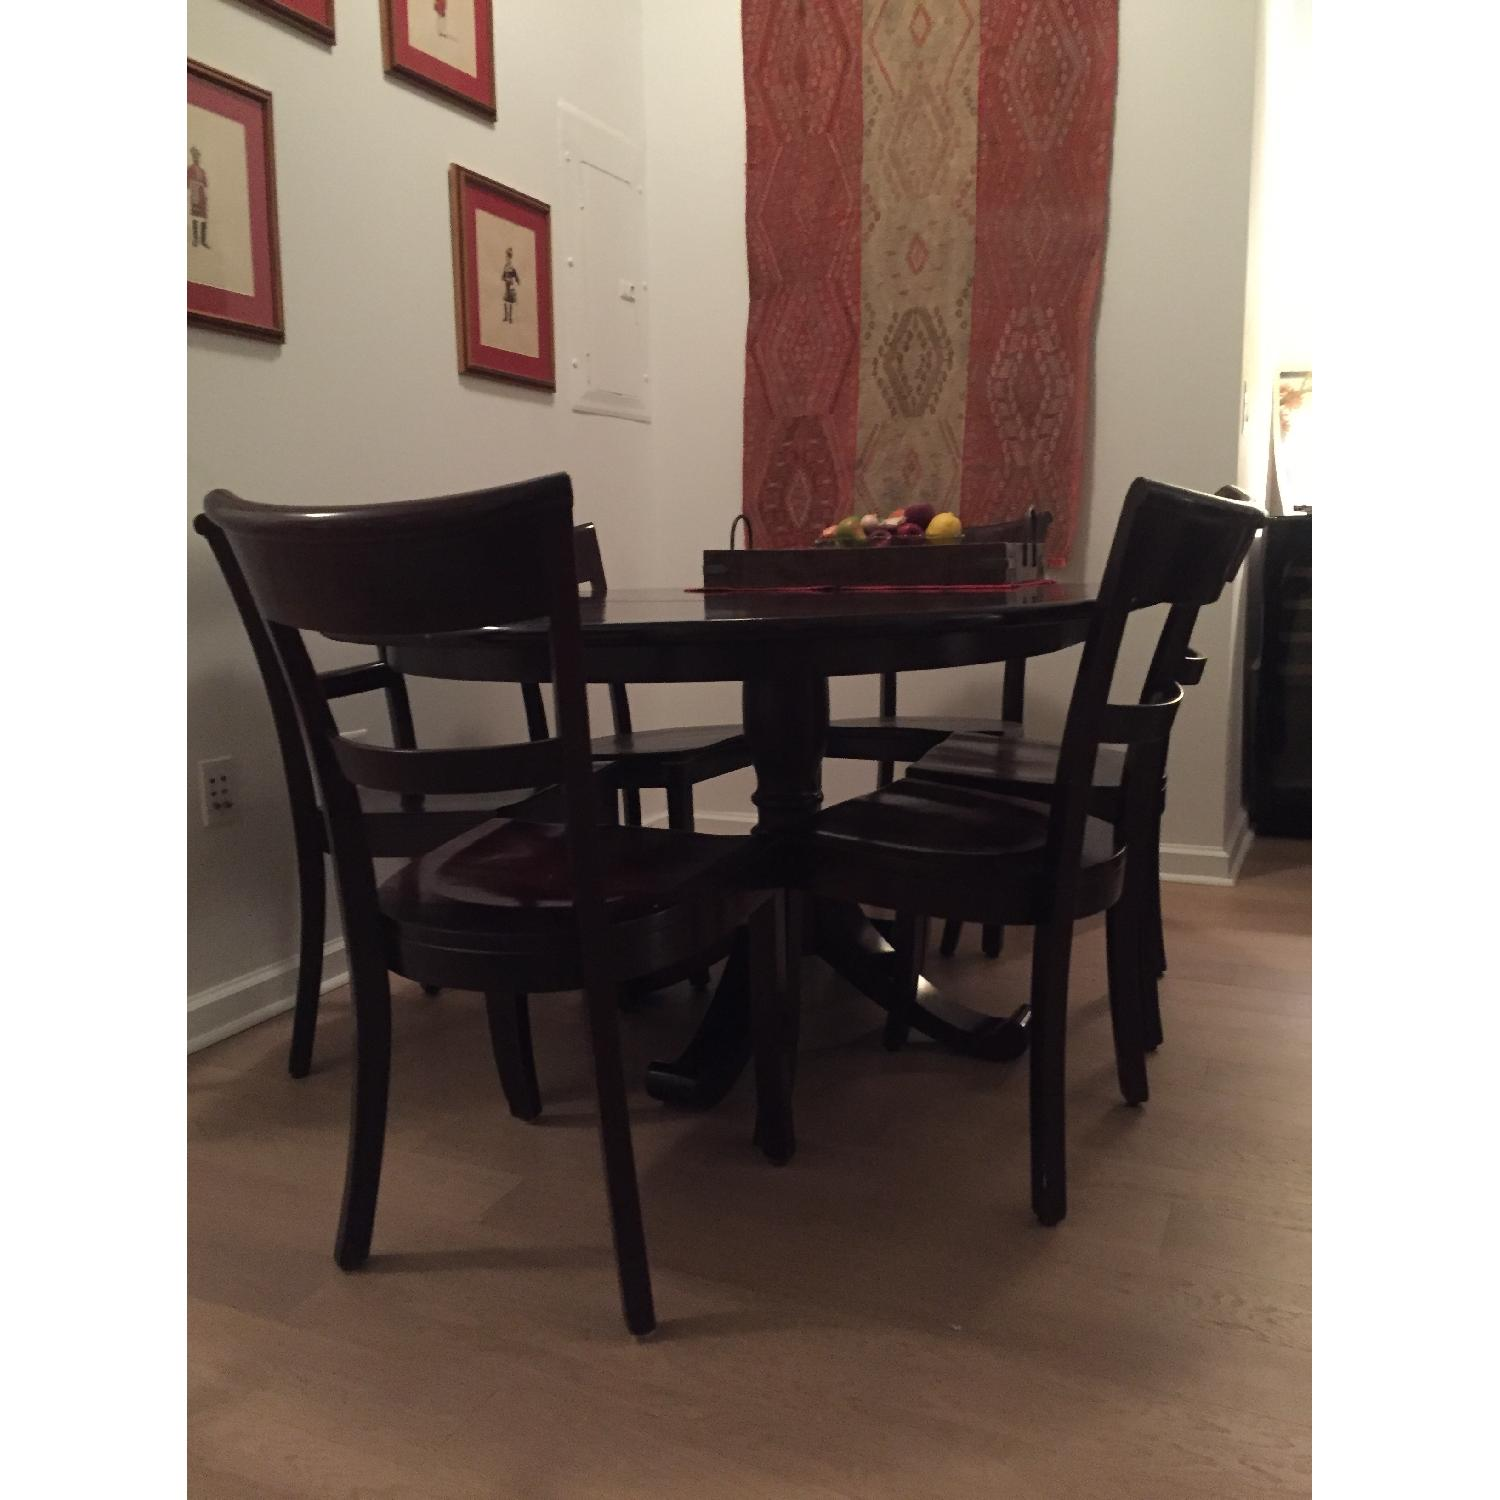 Crate & Barrel Dining Room Table w/ 6 Chairs - image-2